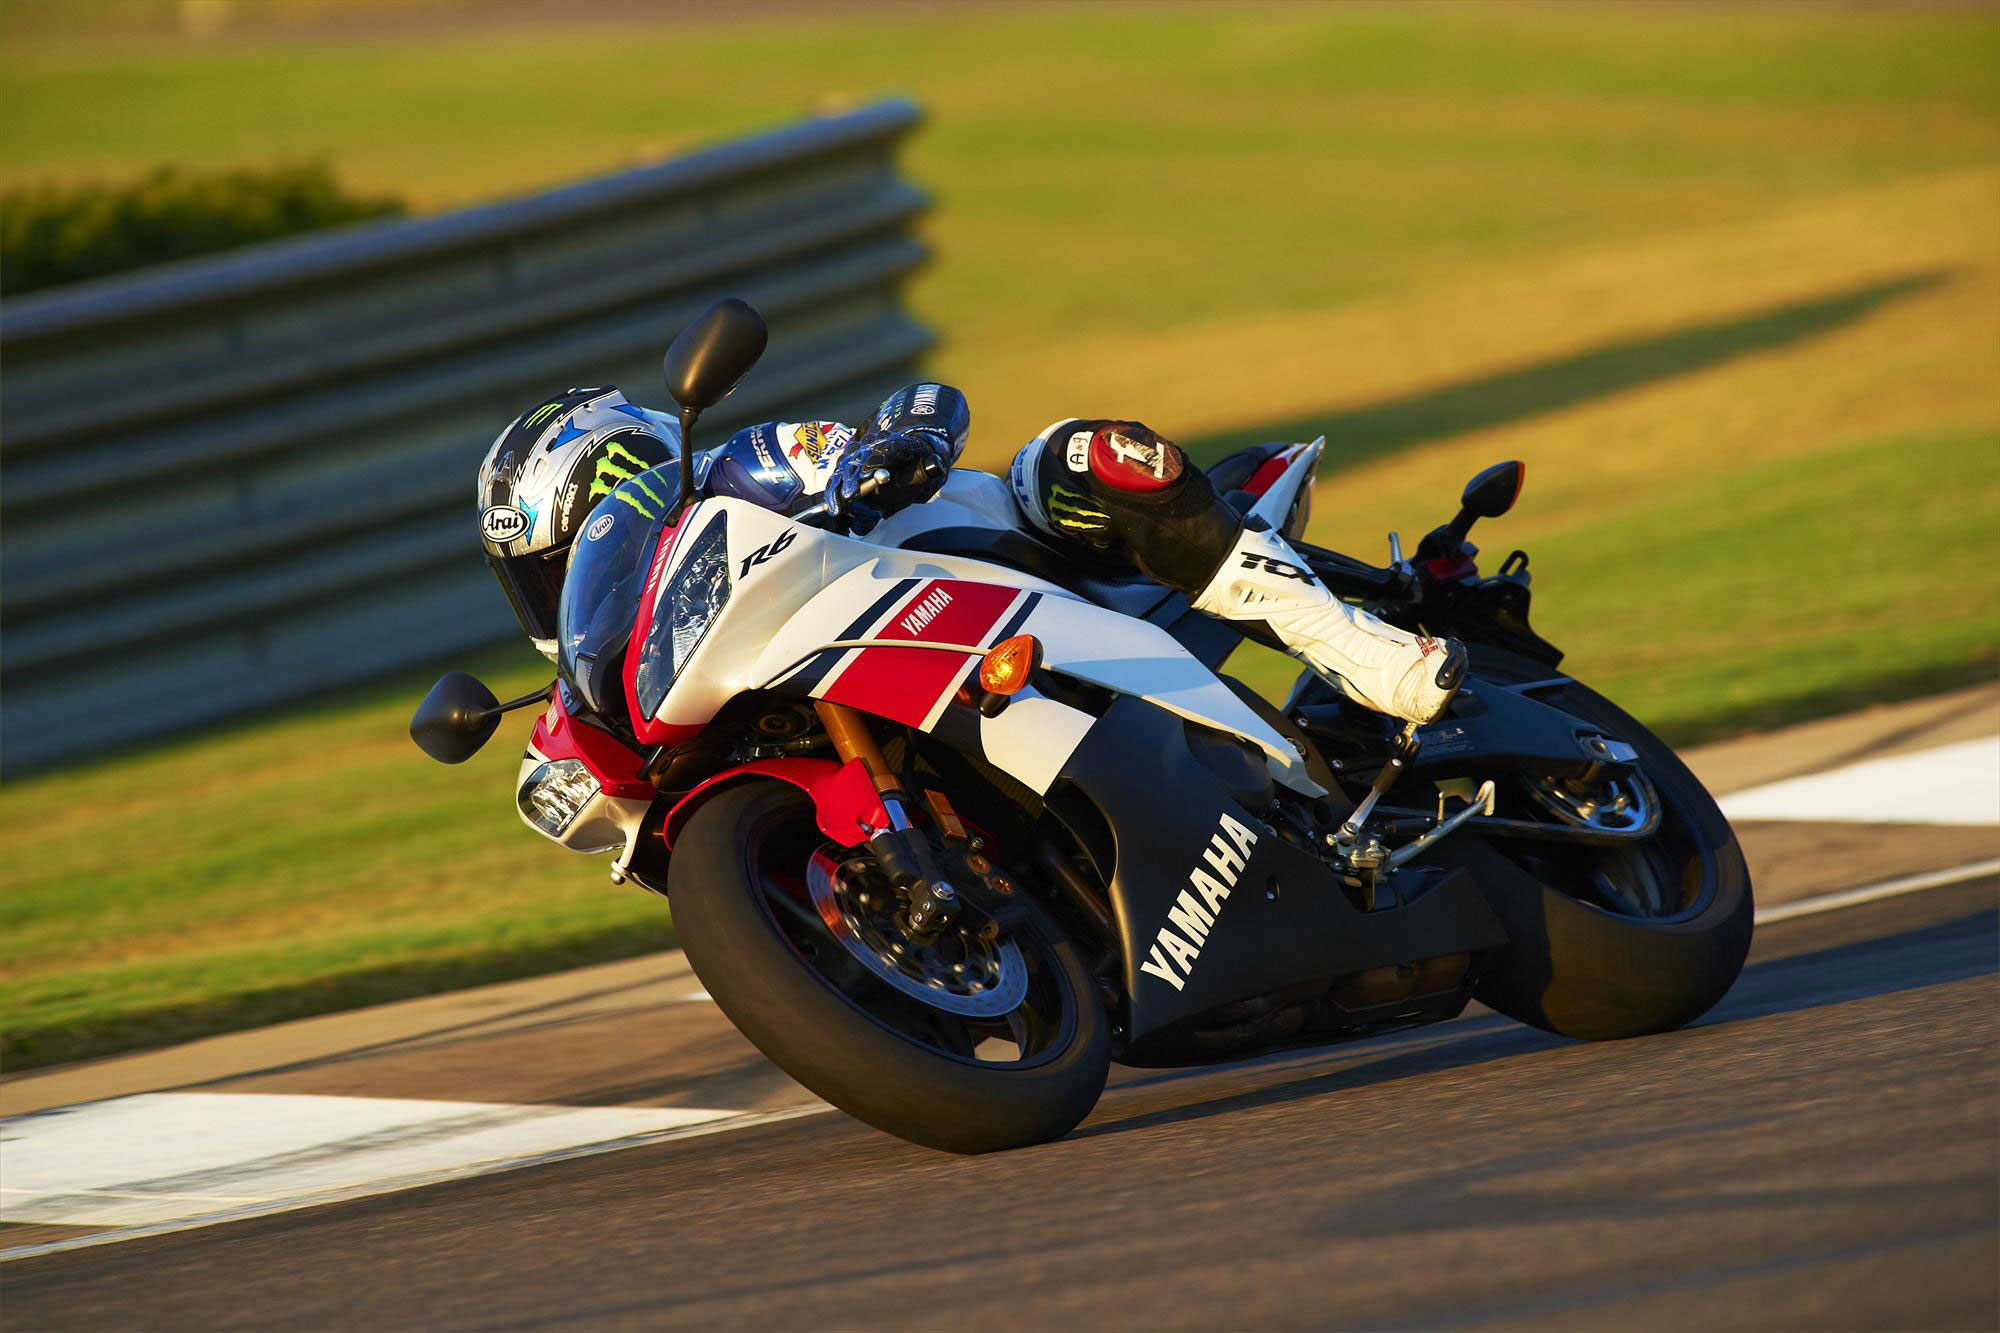 2012 yamaha yzf r6 reviews prices and specs review ebooks - 2012 Yamaha Yzf R6 Worldgp 50th Anniversary Edition